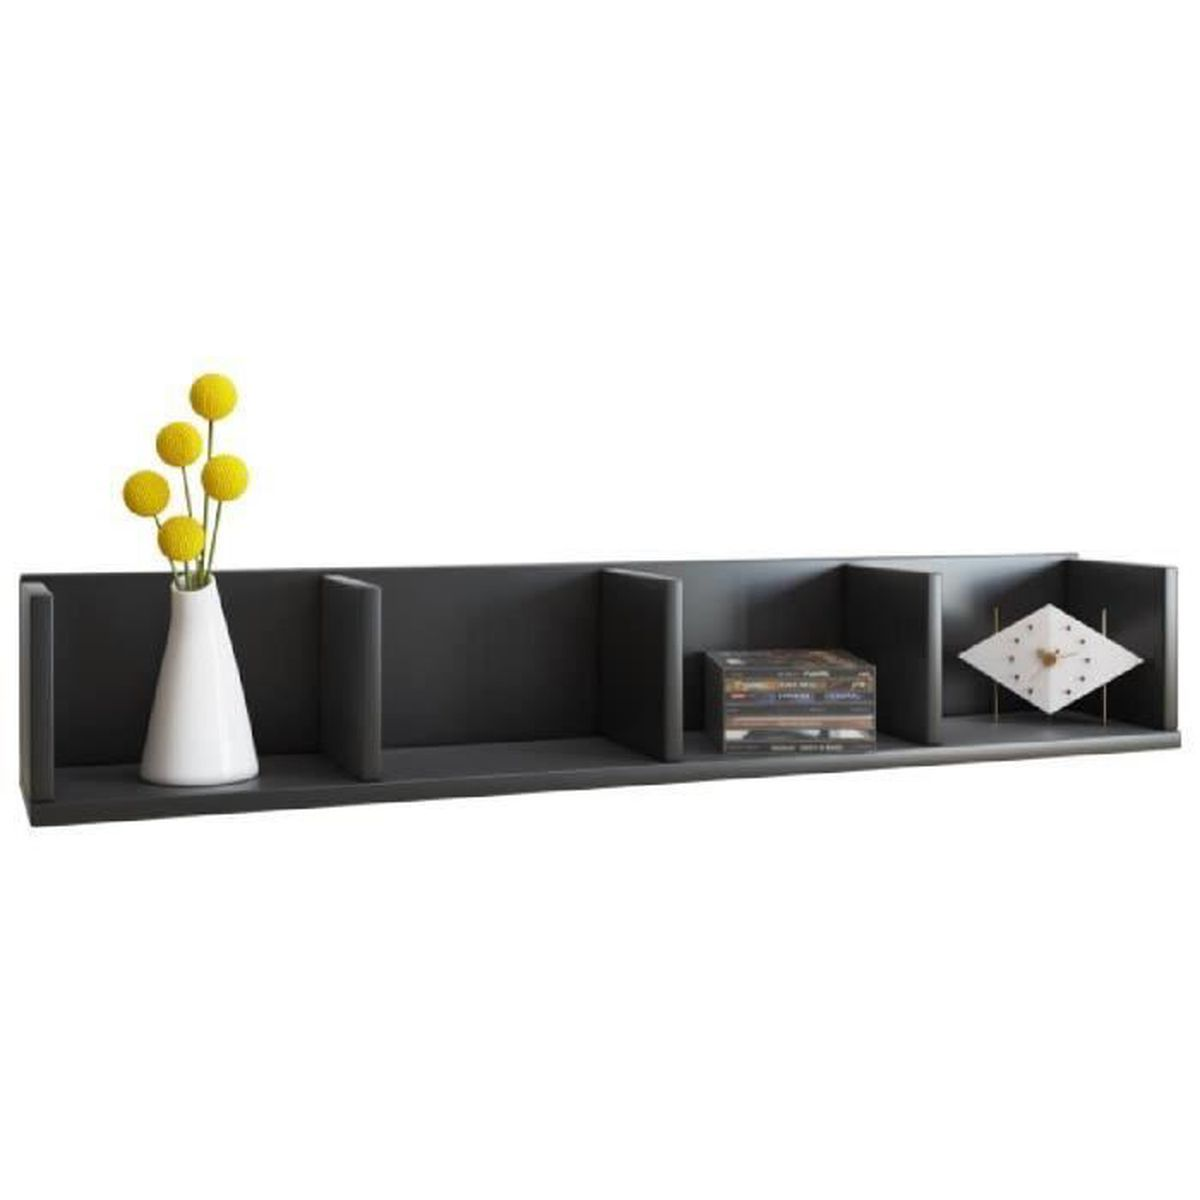 tag re murale honsa board meuble pour livres pions. Black Bedroom Furniture Sets. Home Design Ideas